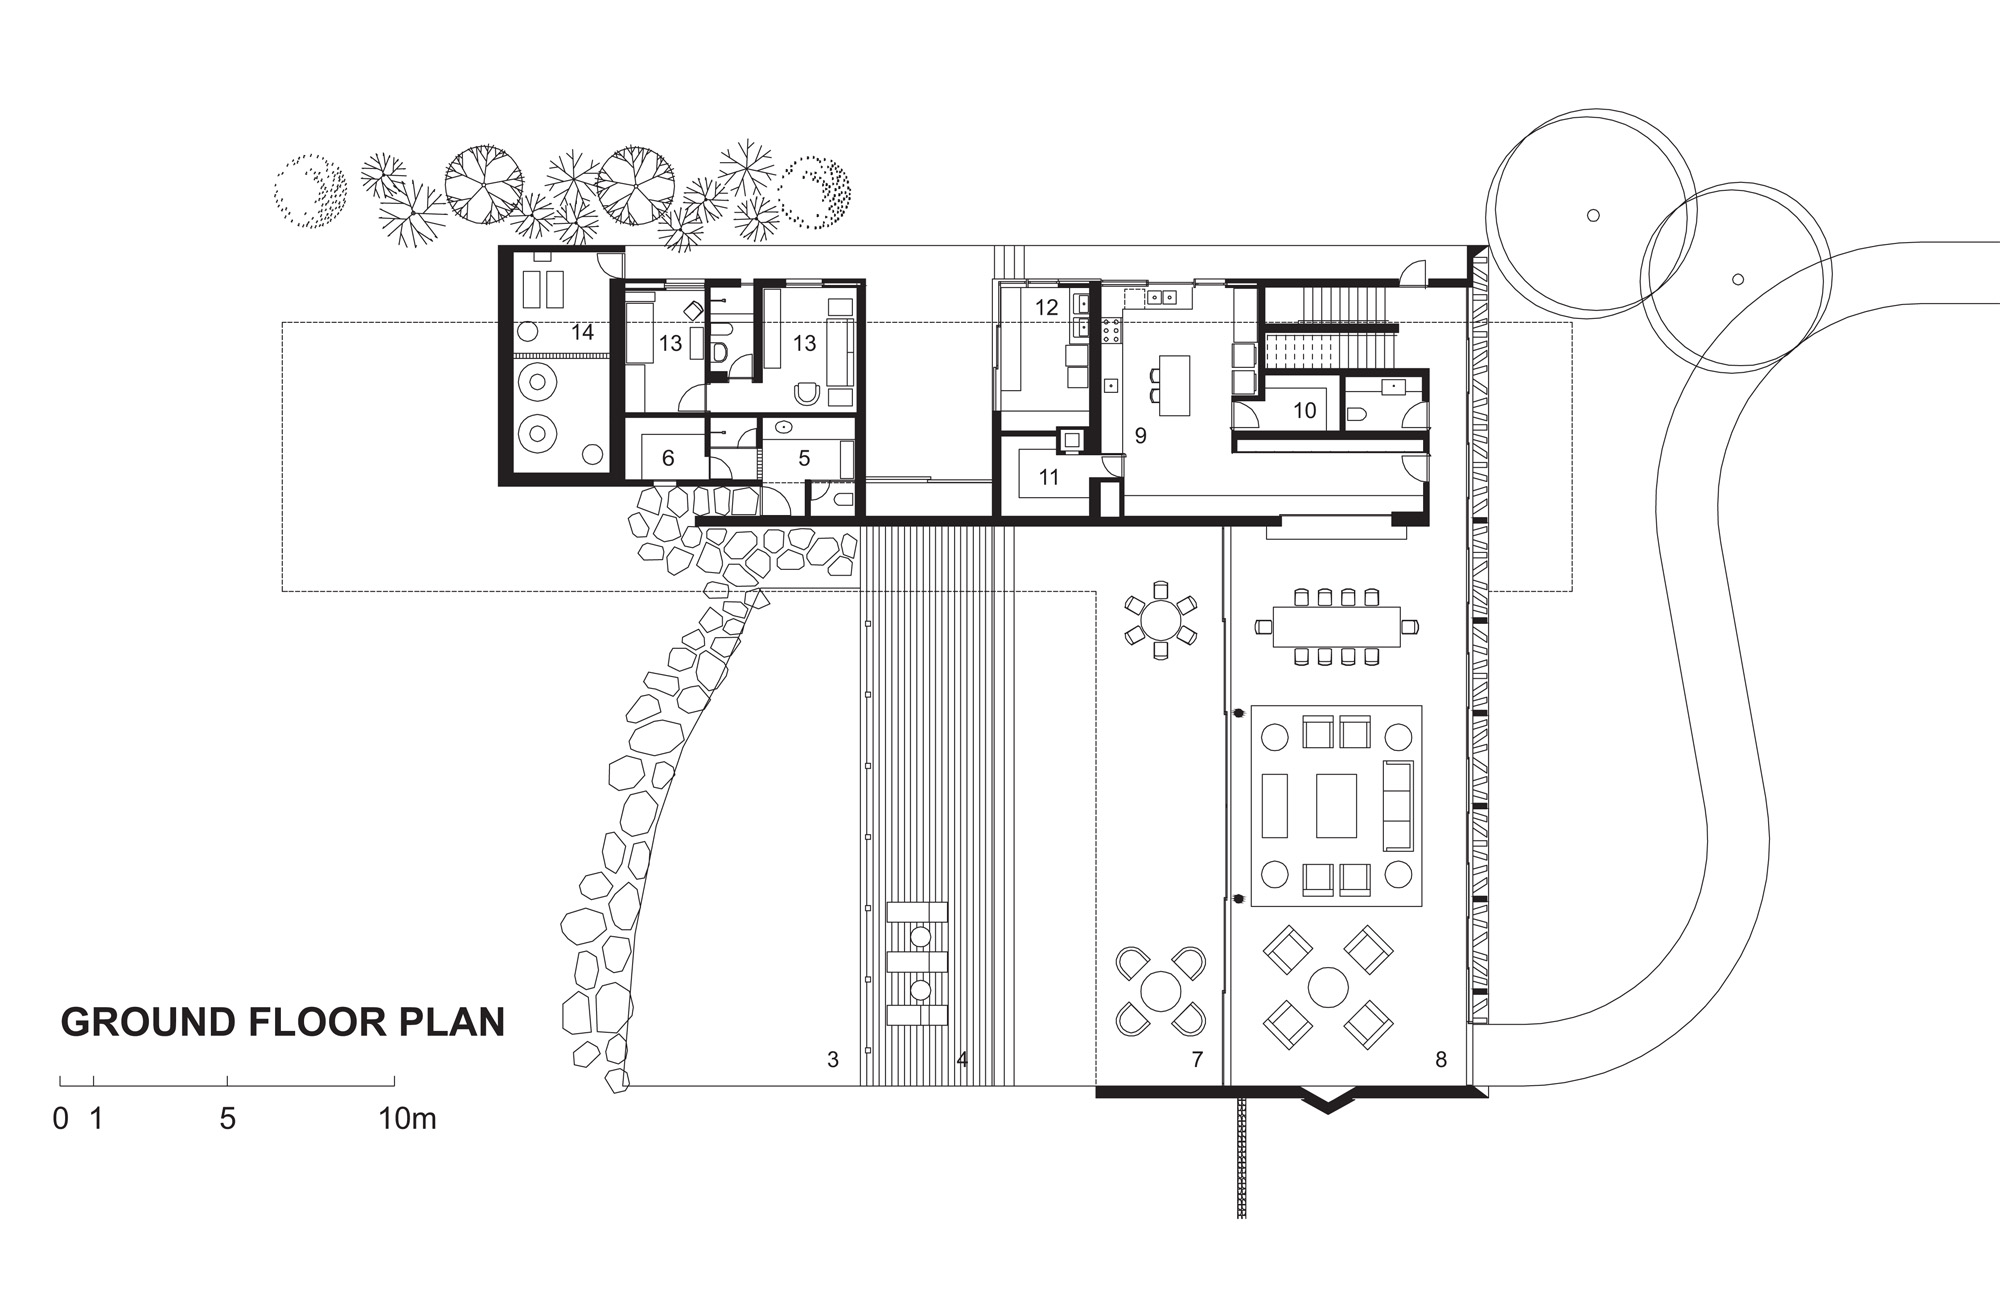 Frank Lloyd Wright Usonian House Plans Gallery Of Piracicaba House Isay Weinfeld 16